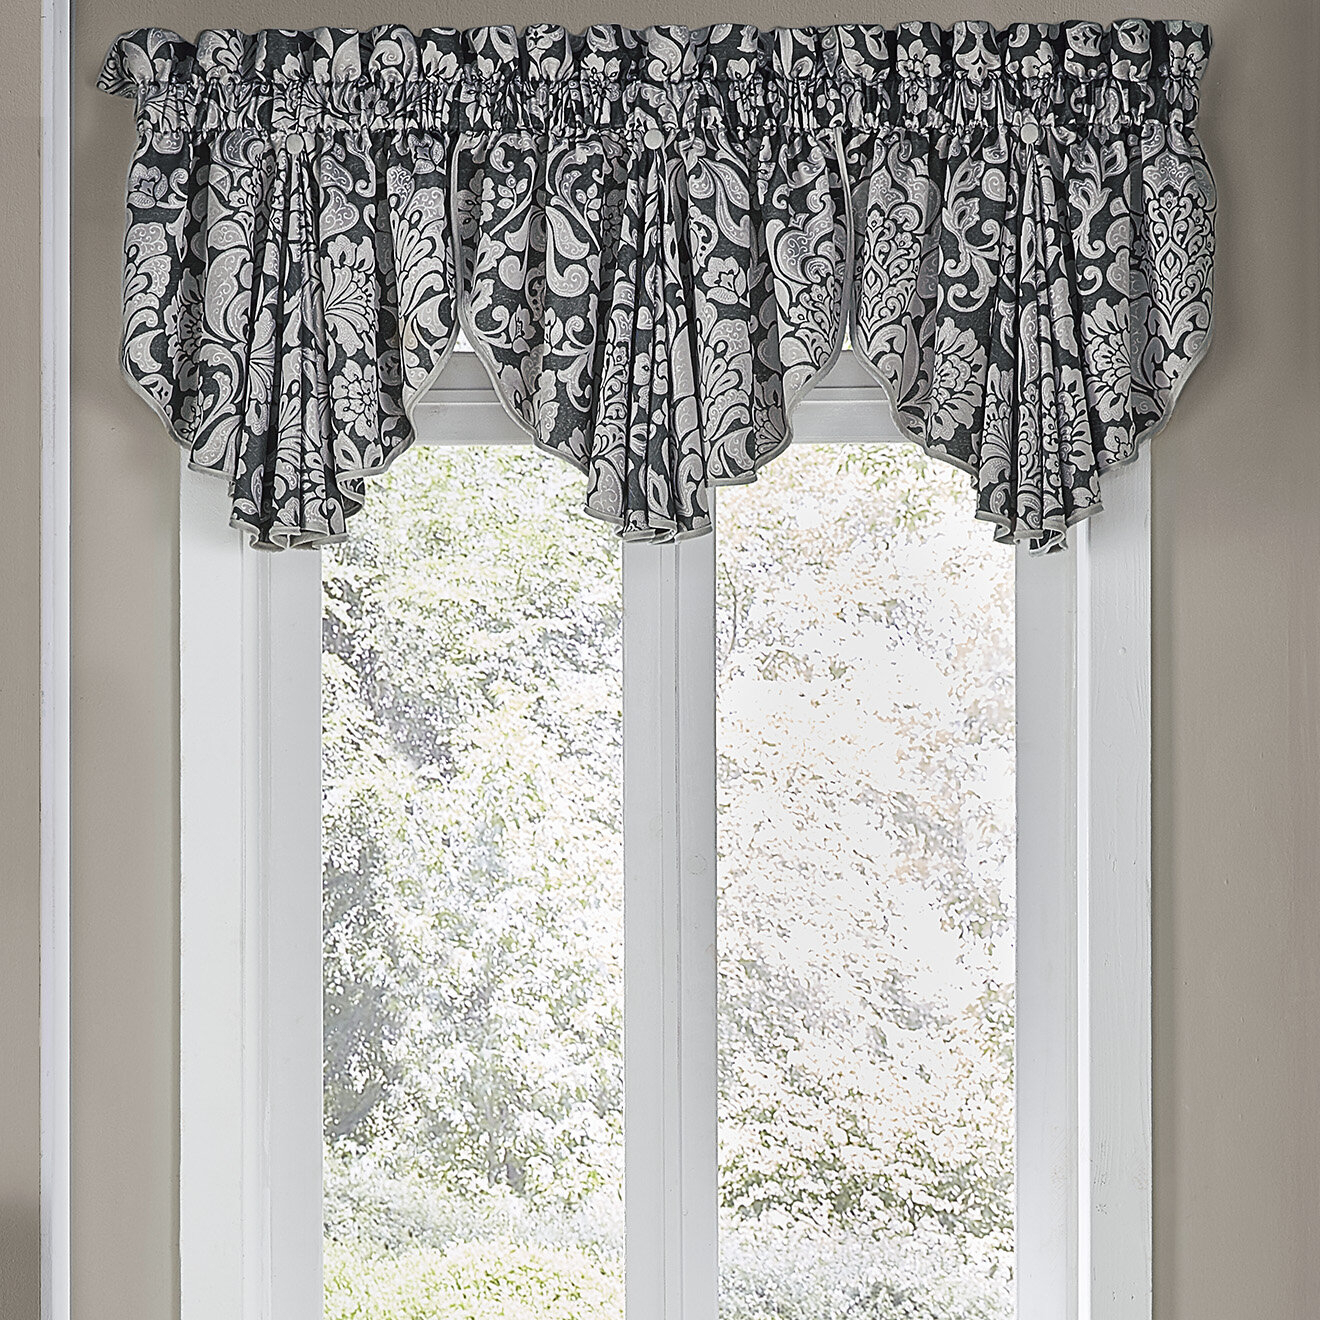 Popular Photo of Circle Curtain Valances